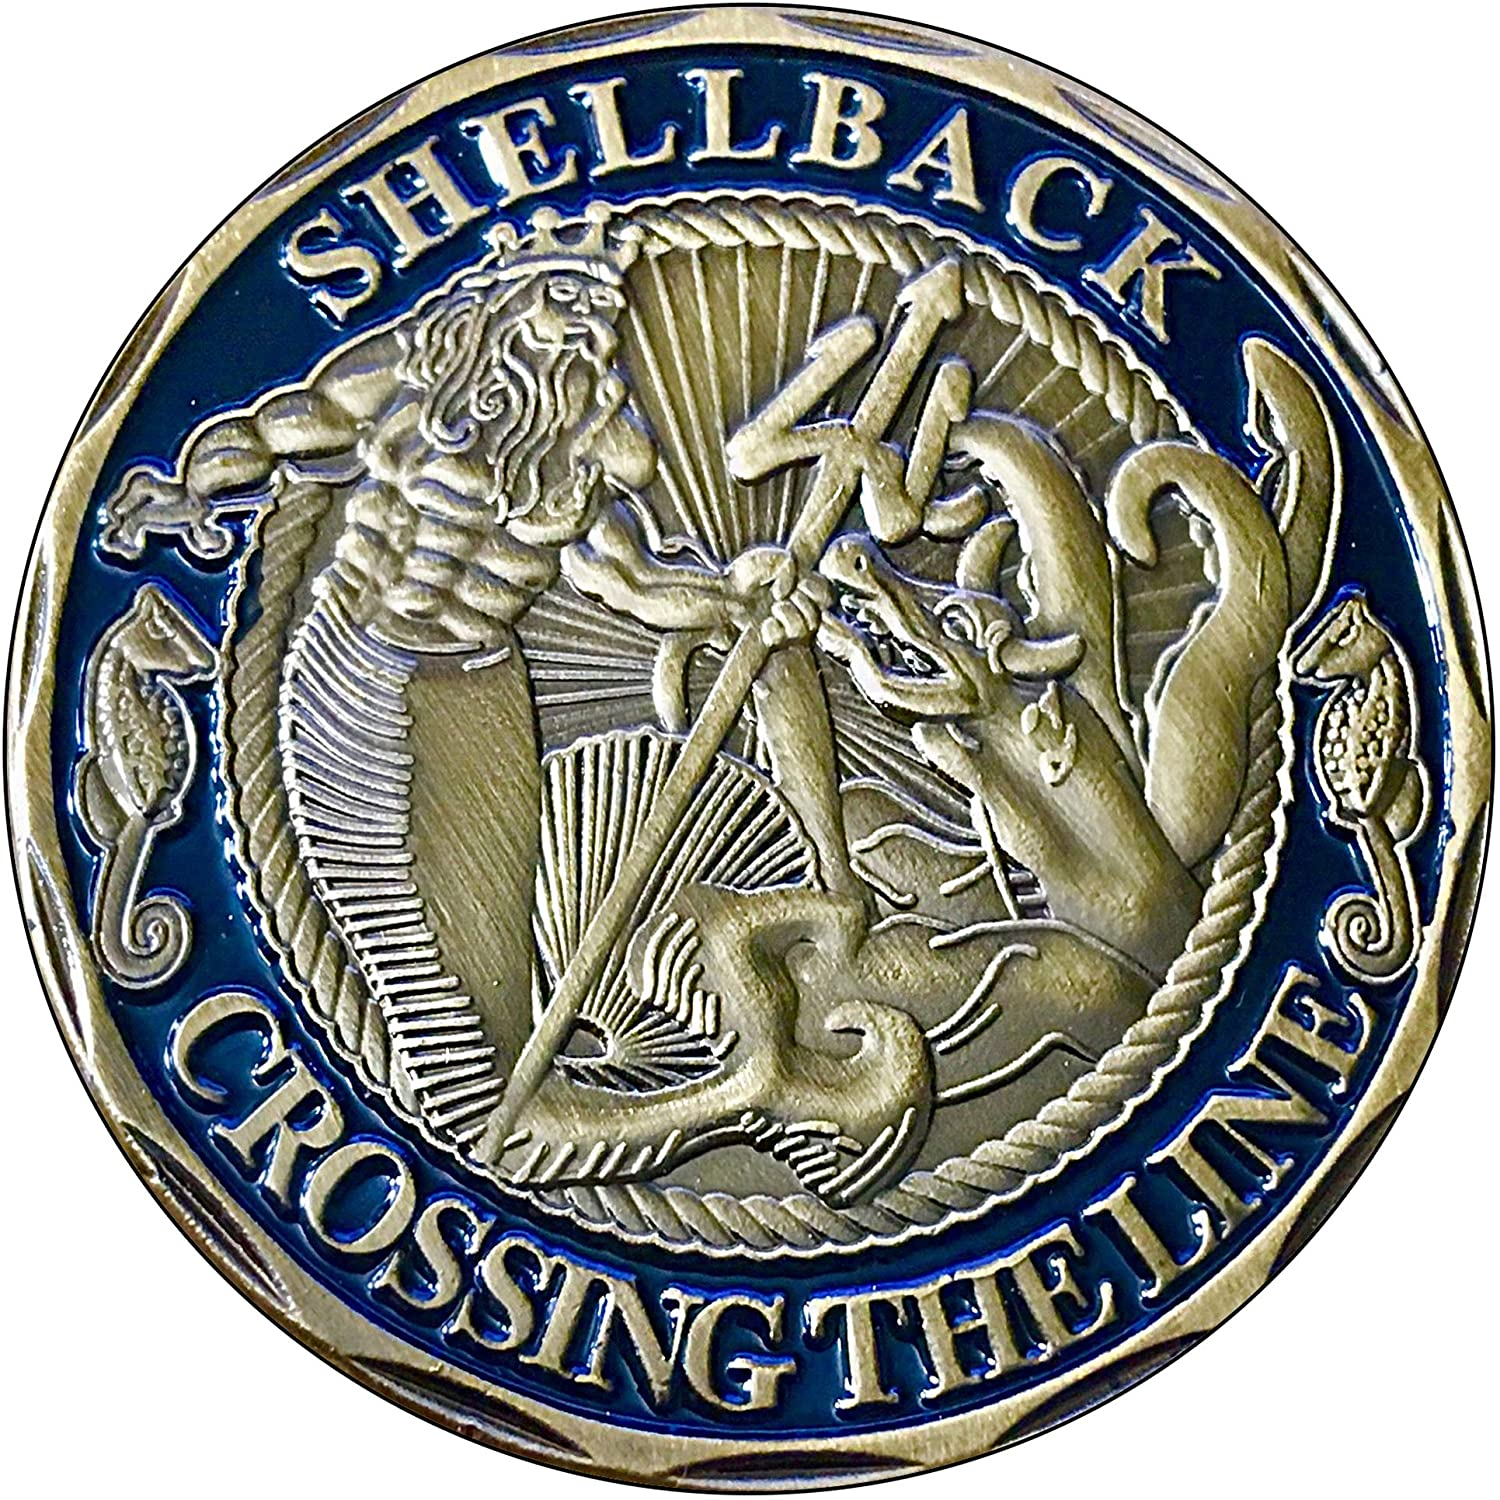 Brotherhood Vintage Gas Sign Reproduction Vintage Metal Signs Round Metal Tin Sign for Garage and Home 8 Inch Diameter – US Navy Shellback Crossing The Line